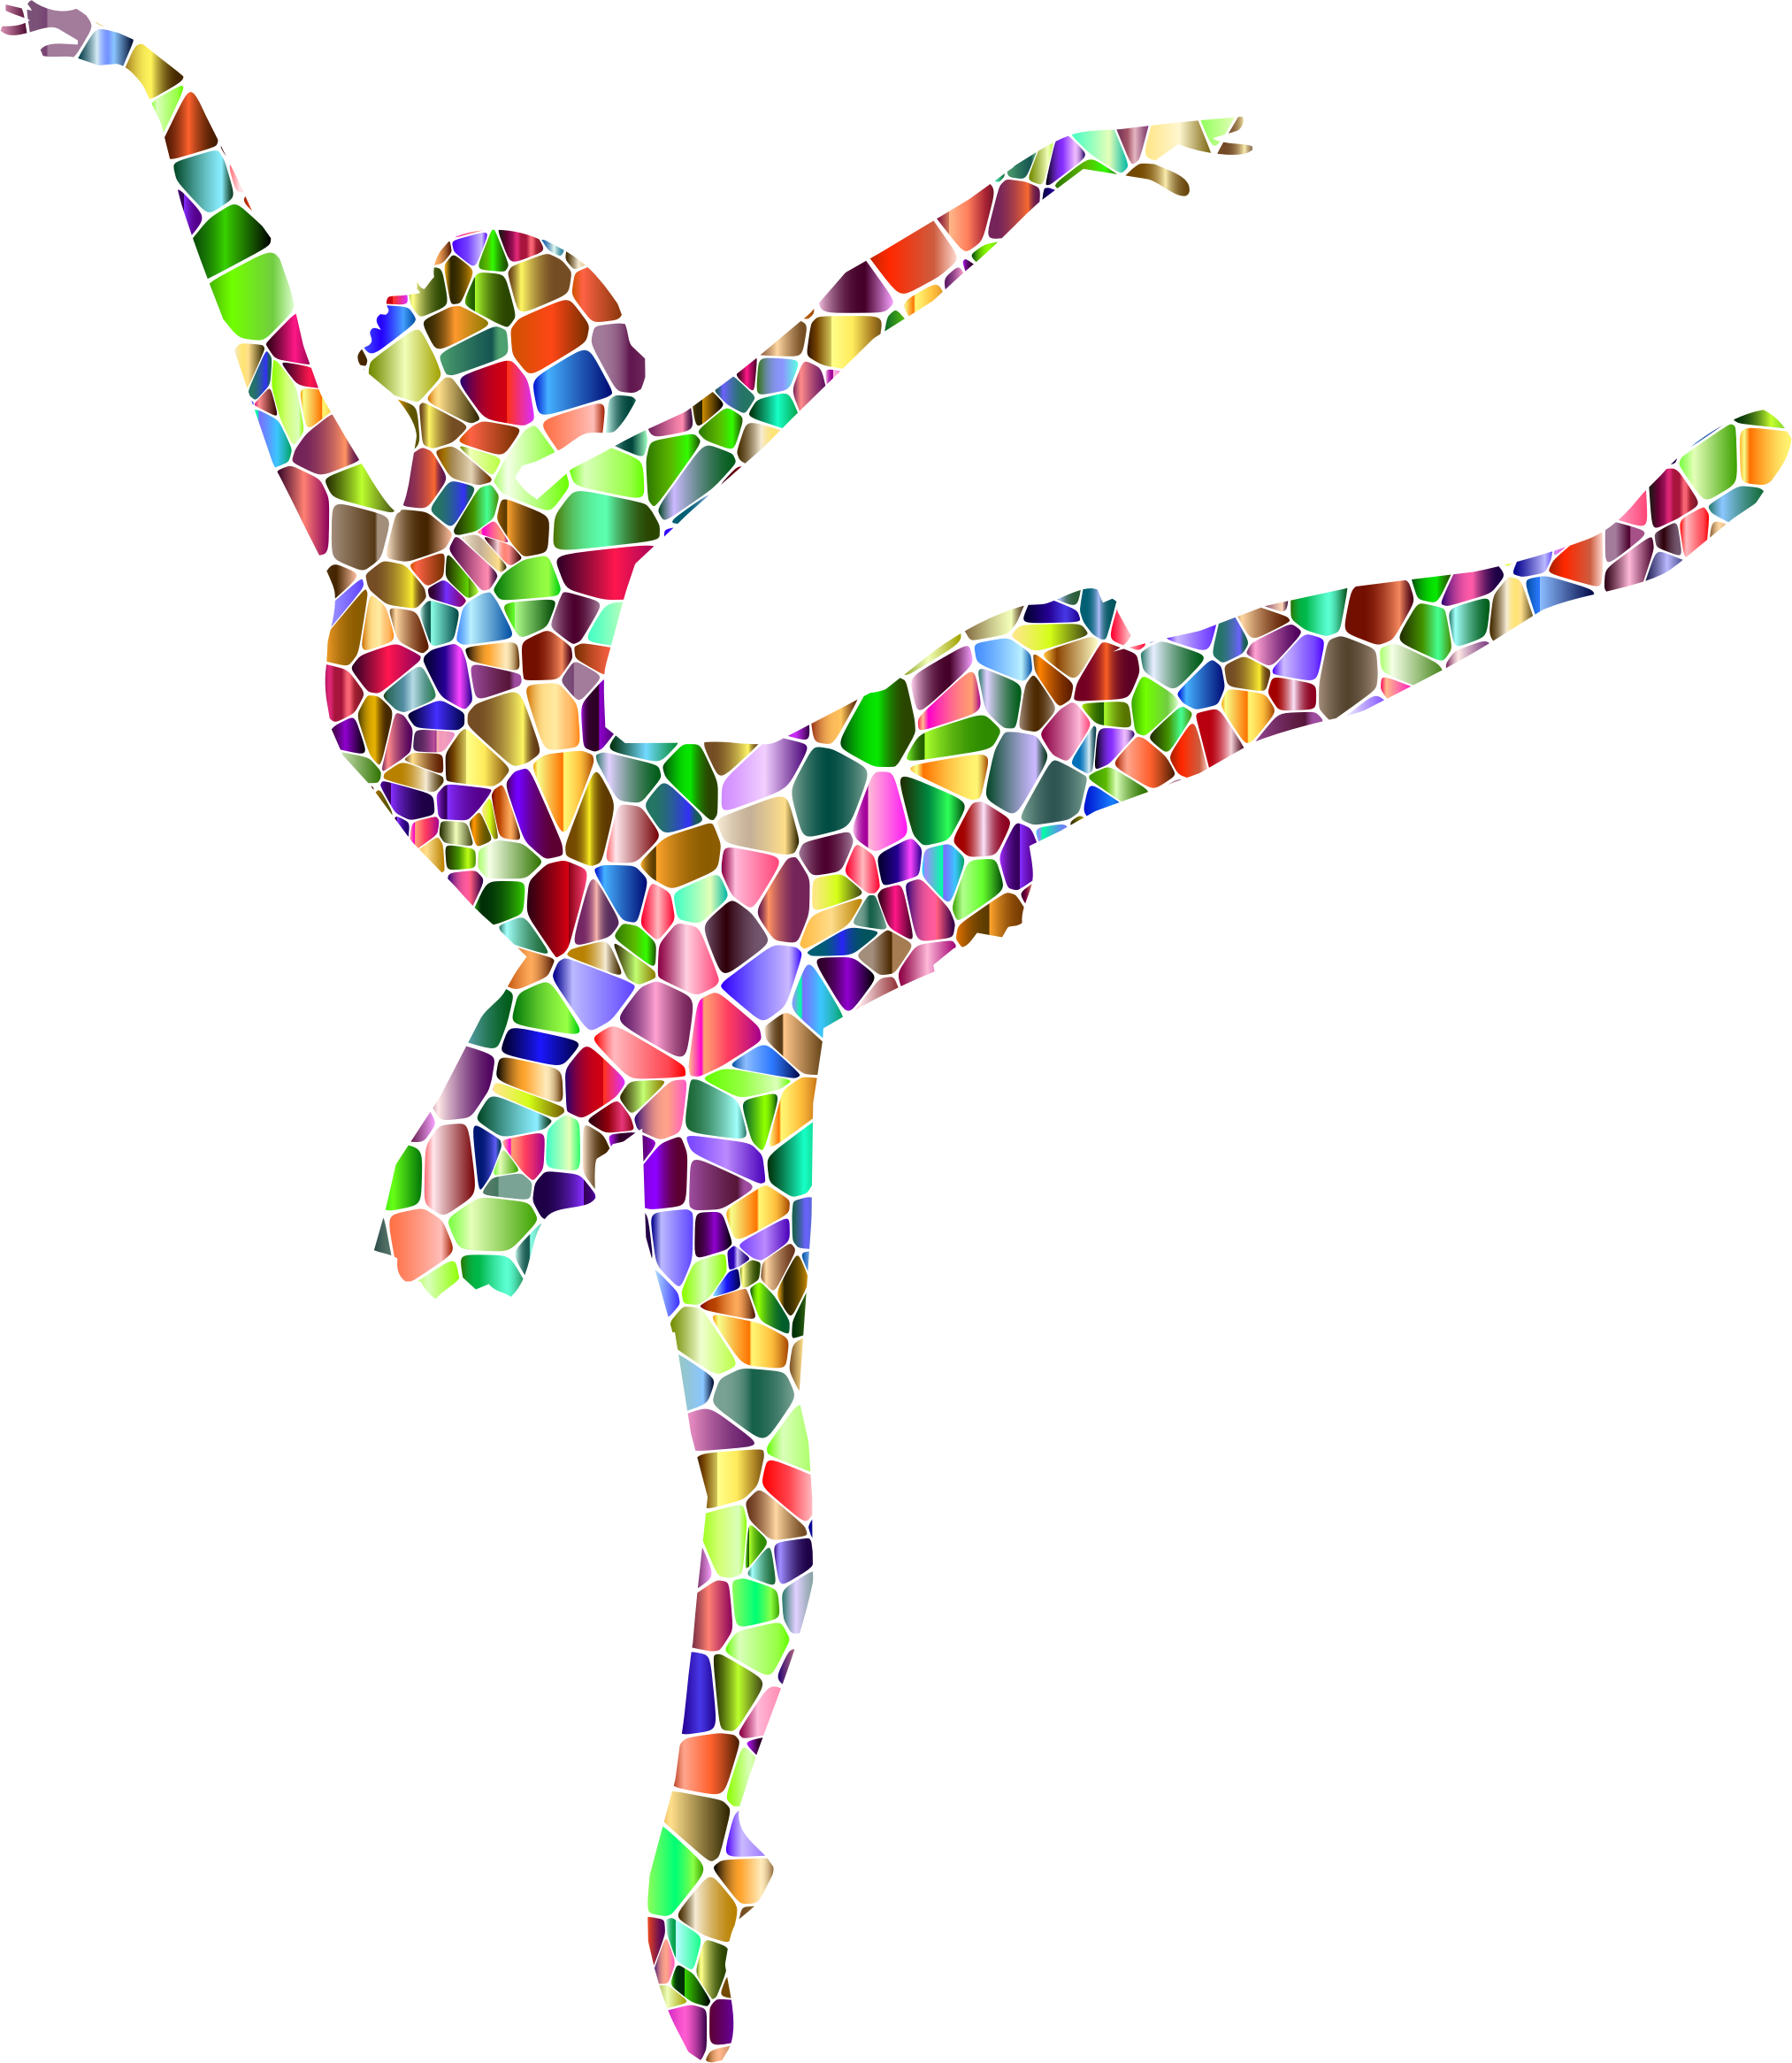 Vivid Chromatic Tiled Graceful Ballerina Silhouette by GDJ